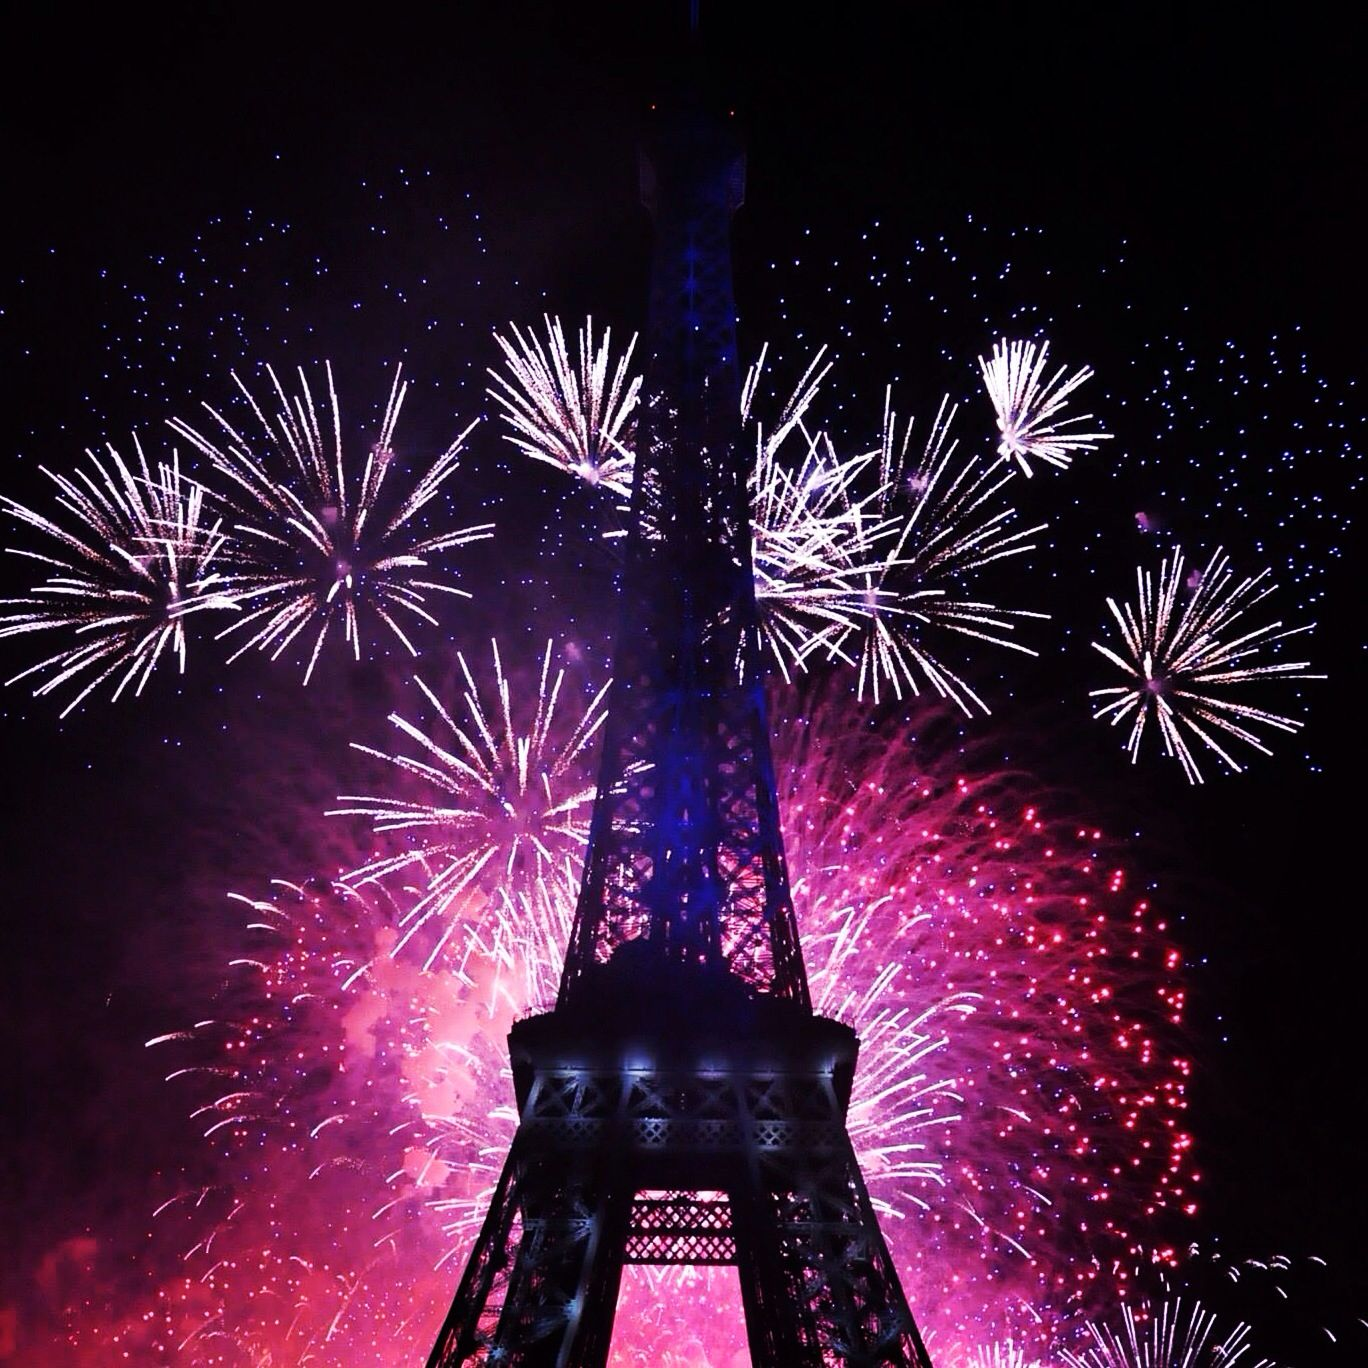 The Eiffel Tower is decorated with beautiful fireworks on the French national day...the most beautiful lights I've ever seen...